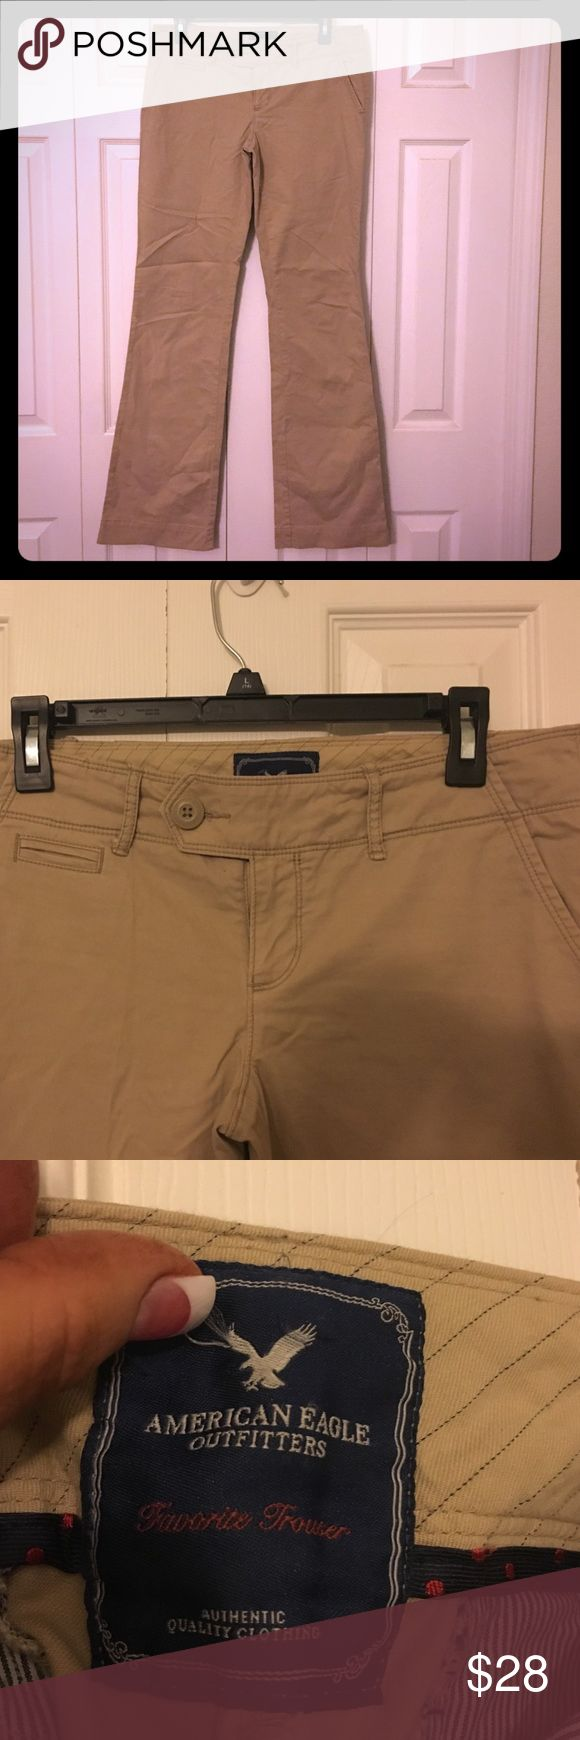 American Eagle Favorite Trouser khaki pants 6 Tall Super cute American Eagle khaki chino pants , lower rise , boot cut . Size 6 Tall American Eagle Outfitters Pants Boot Cut & Flare